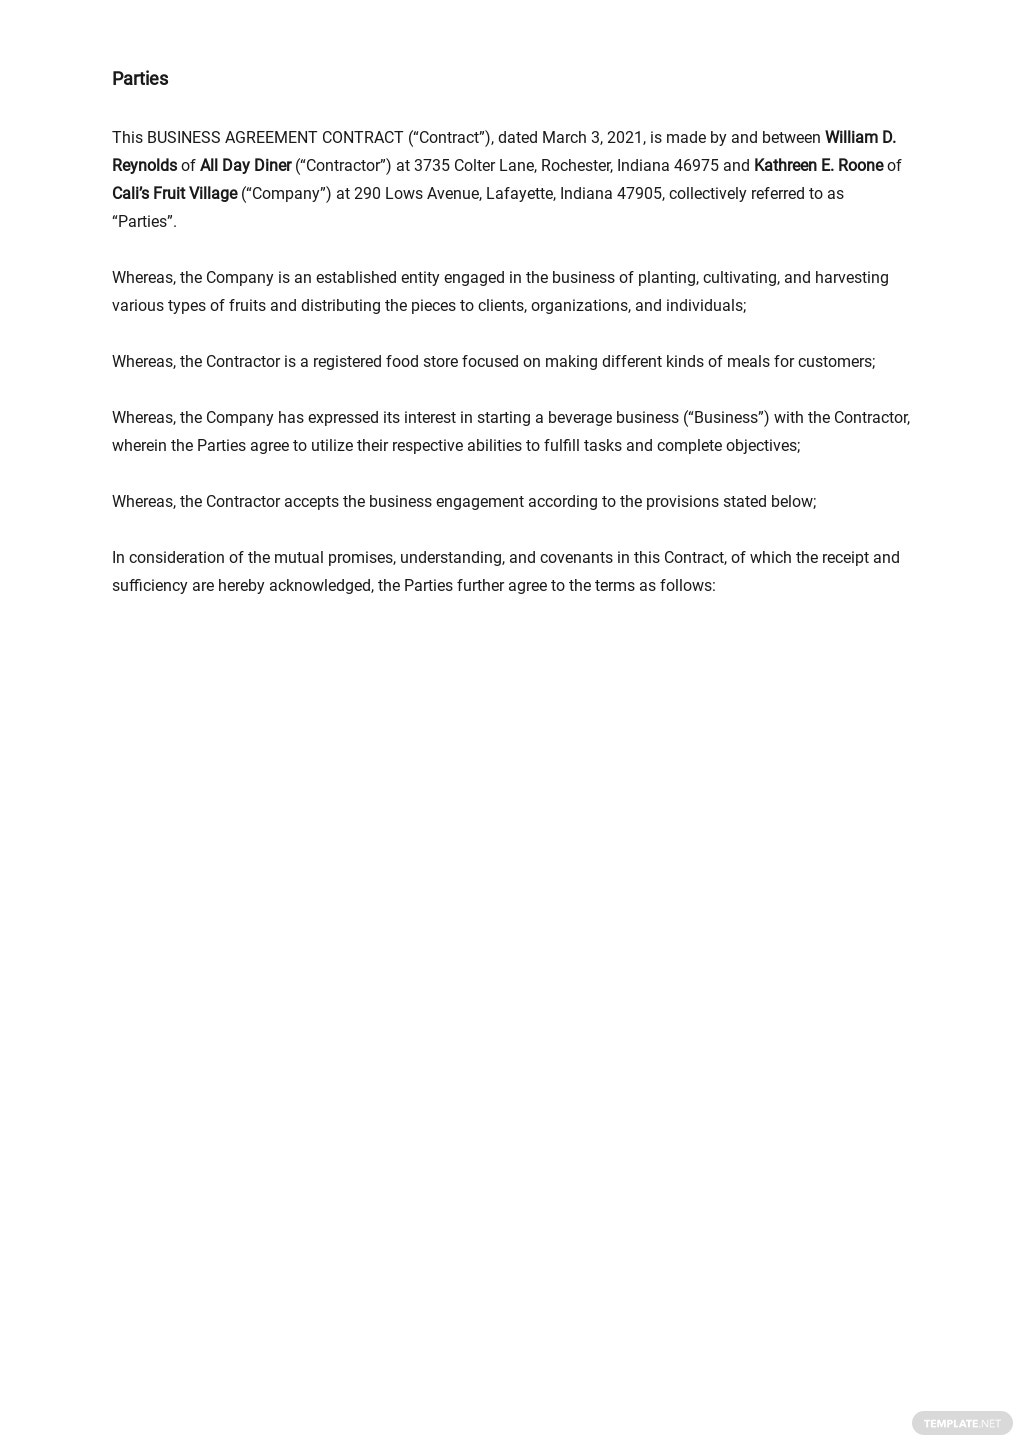 Business Agreement Contract Template 1.jpe